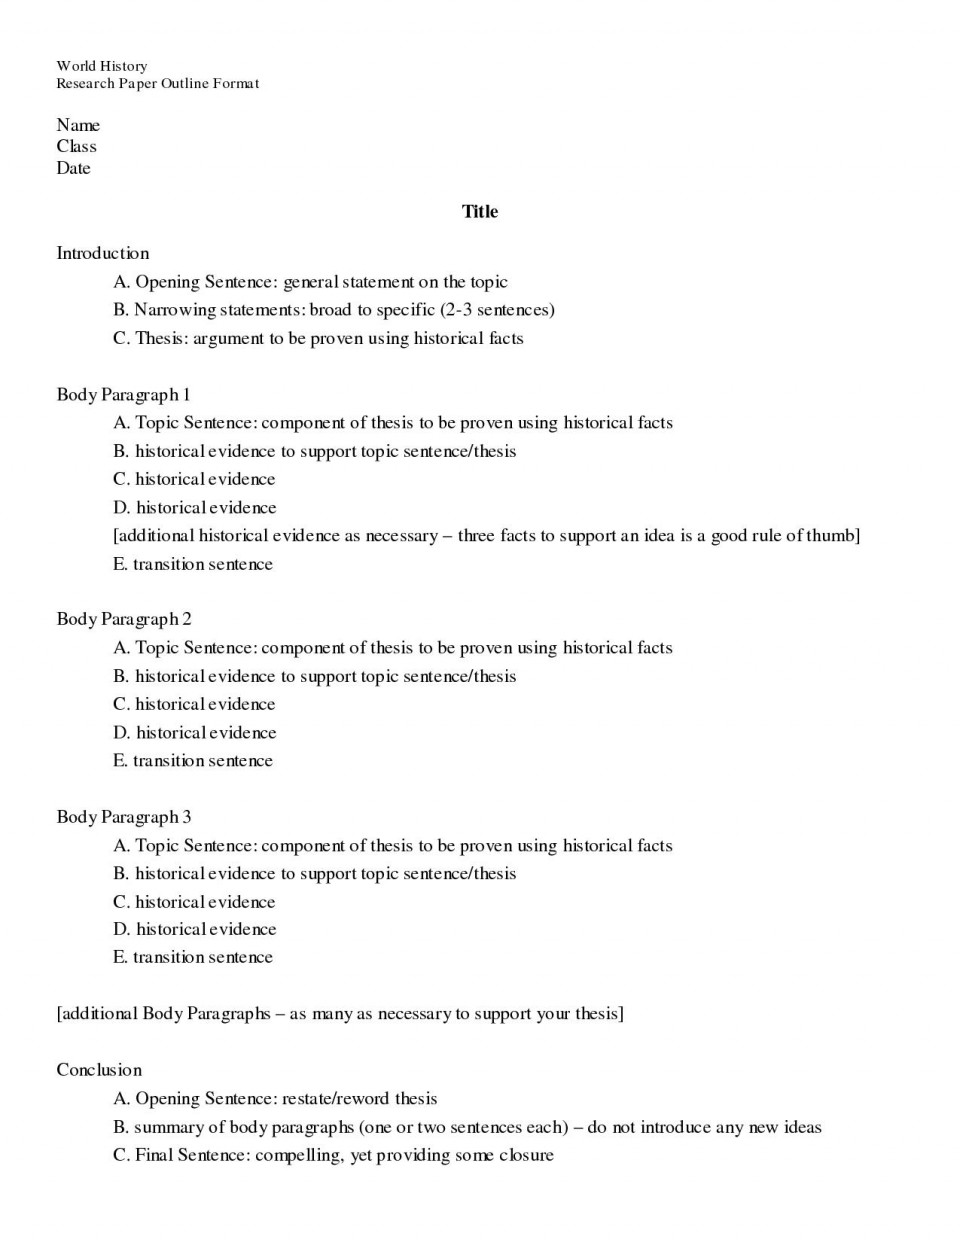 012 Outline Image1 Sample Outlines For Researchs Awful Research Papers Writing 960